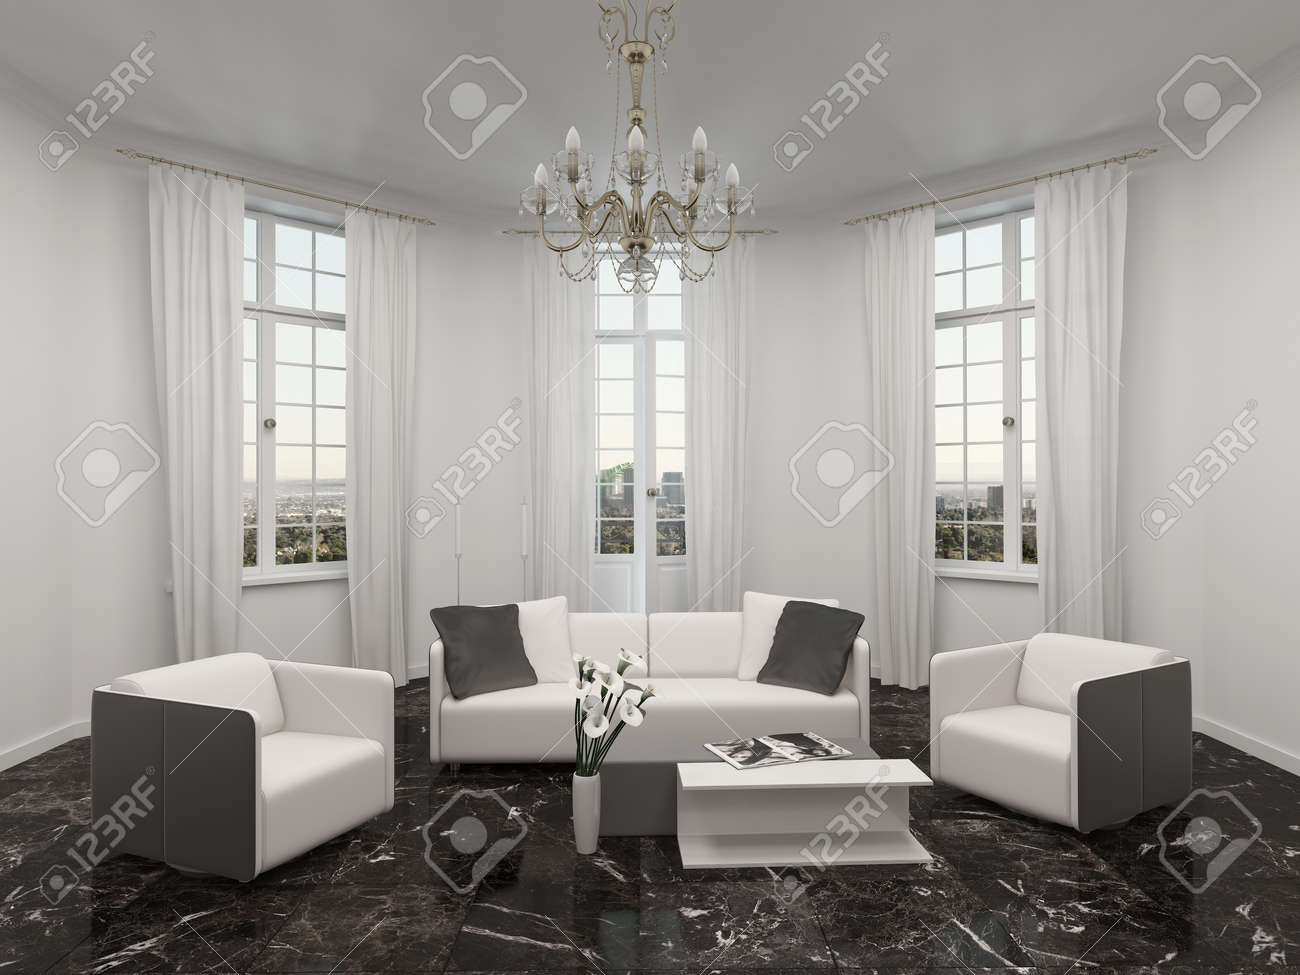 Luxury Living Room Interior With Bay Window, Chandelier And White ...